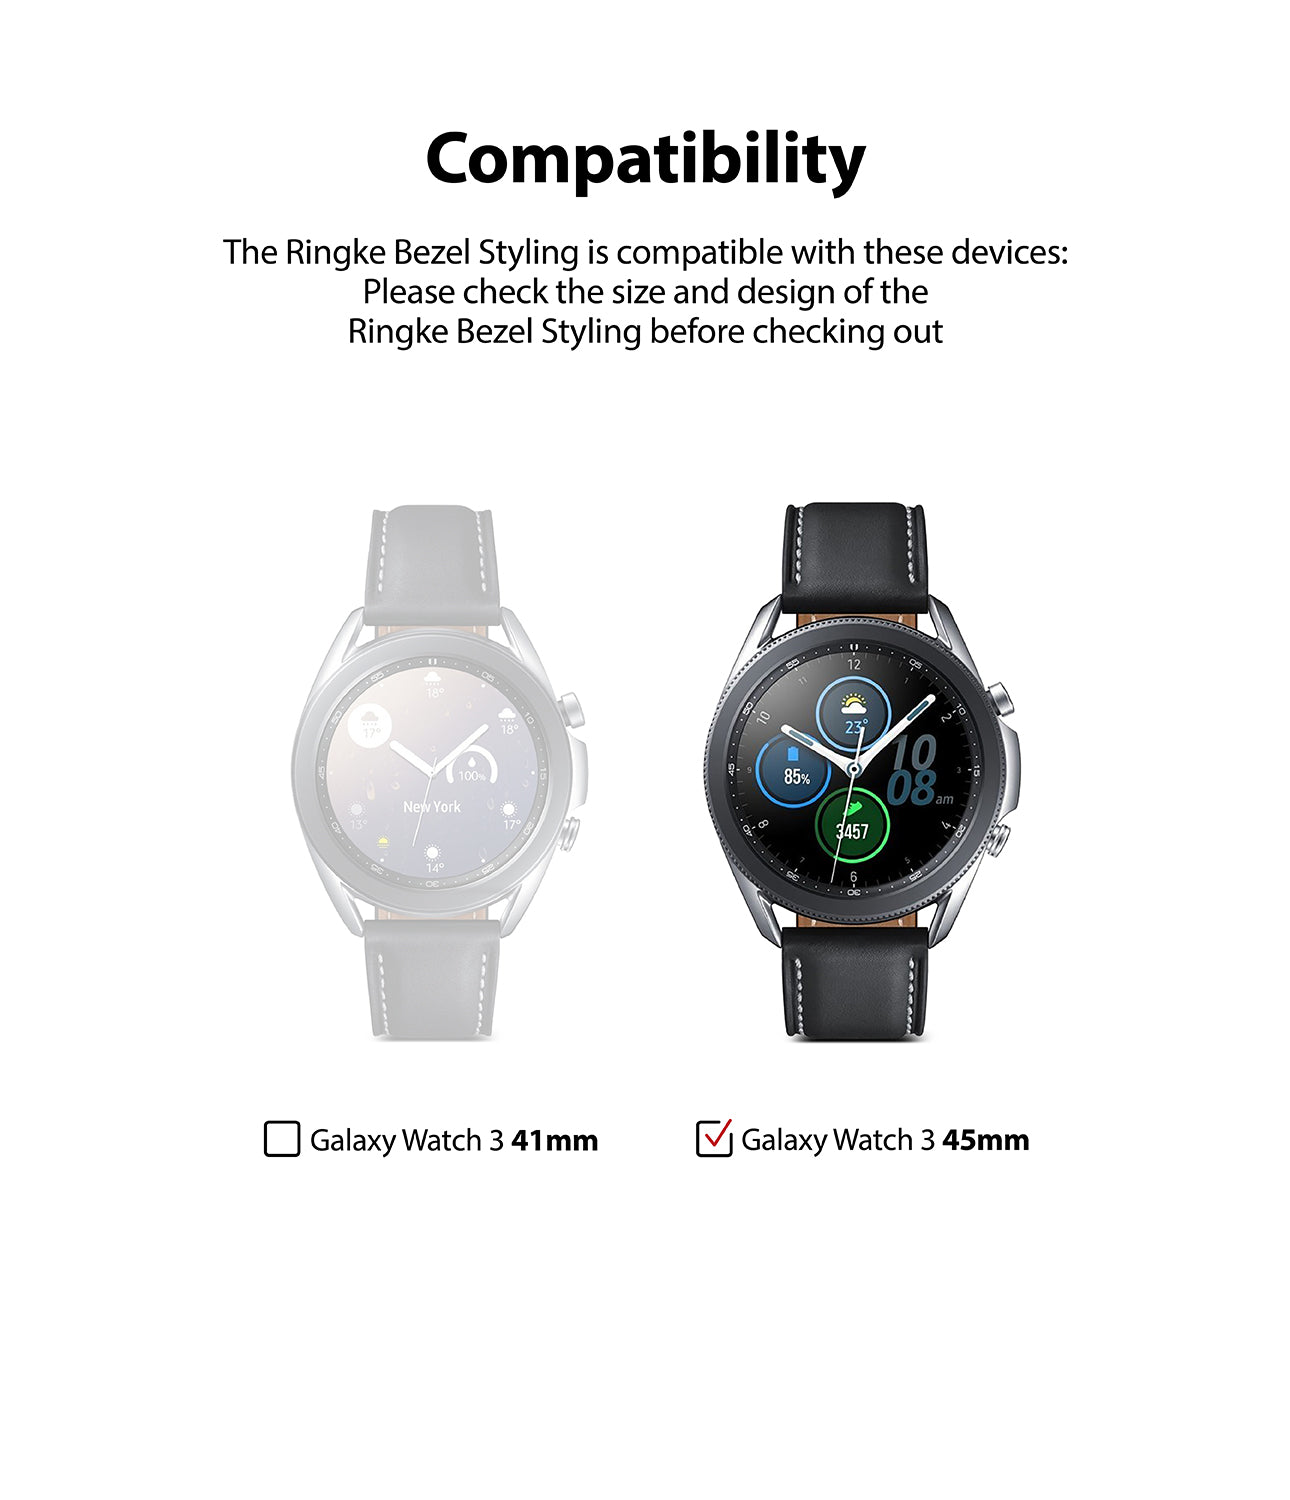 galaxy watch 3 45mm ringke bezel styling 45-07